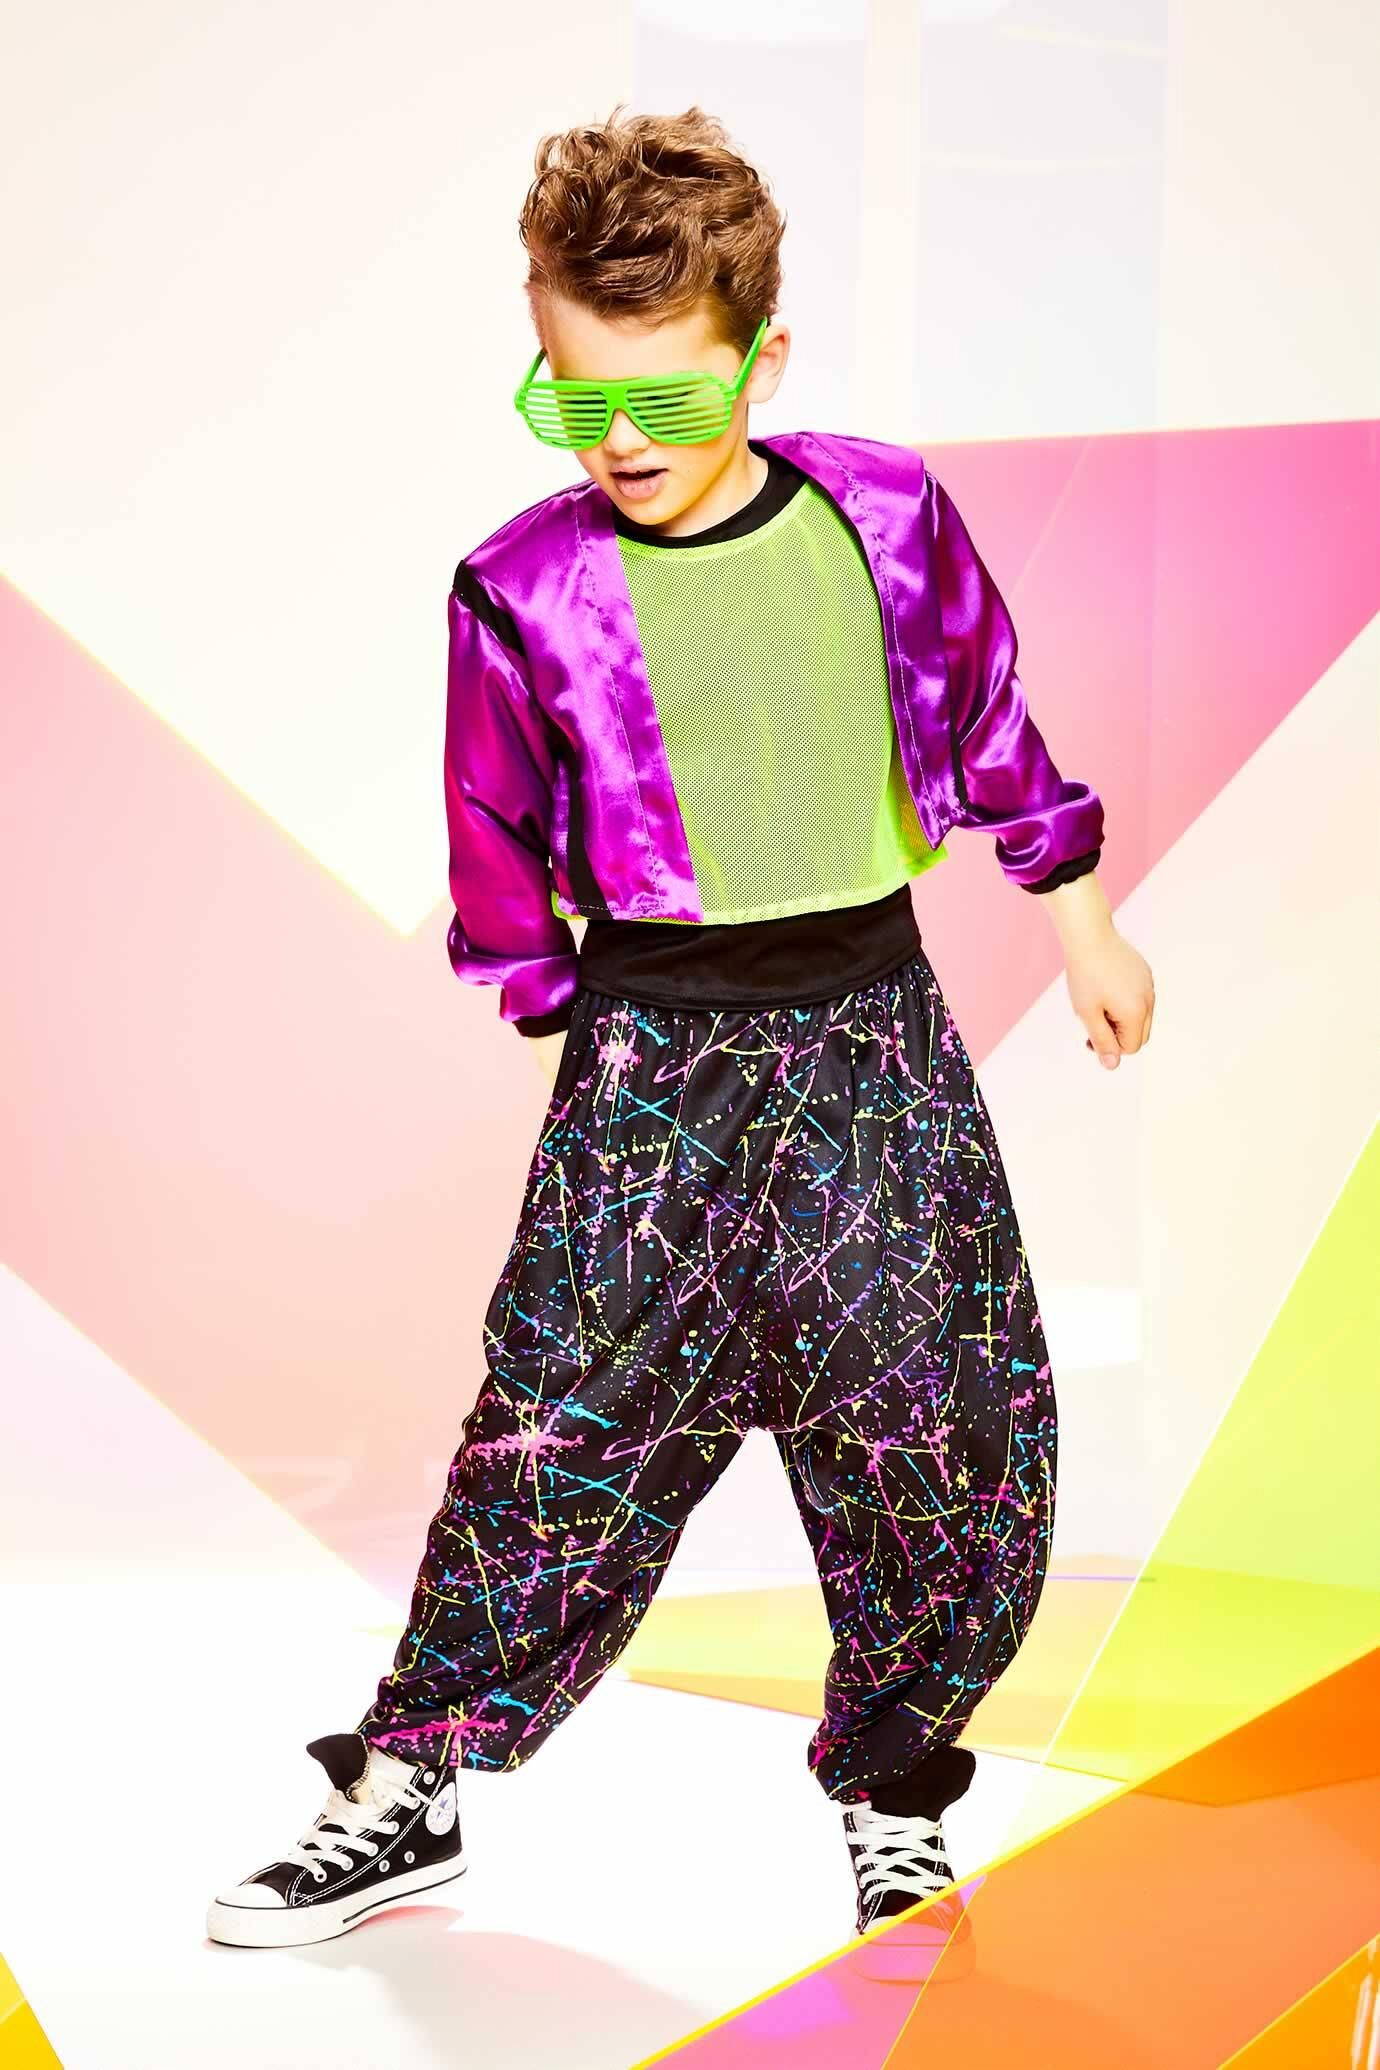 '80s Costume for Boys | 80s party outfits. 80s fashion kids. 80s costume